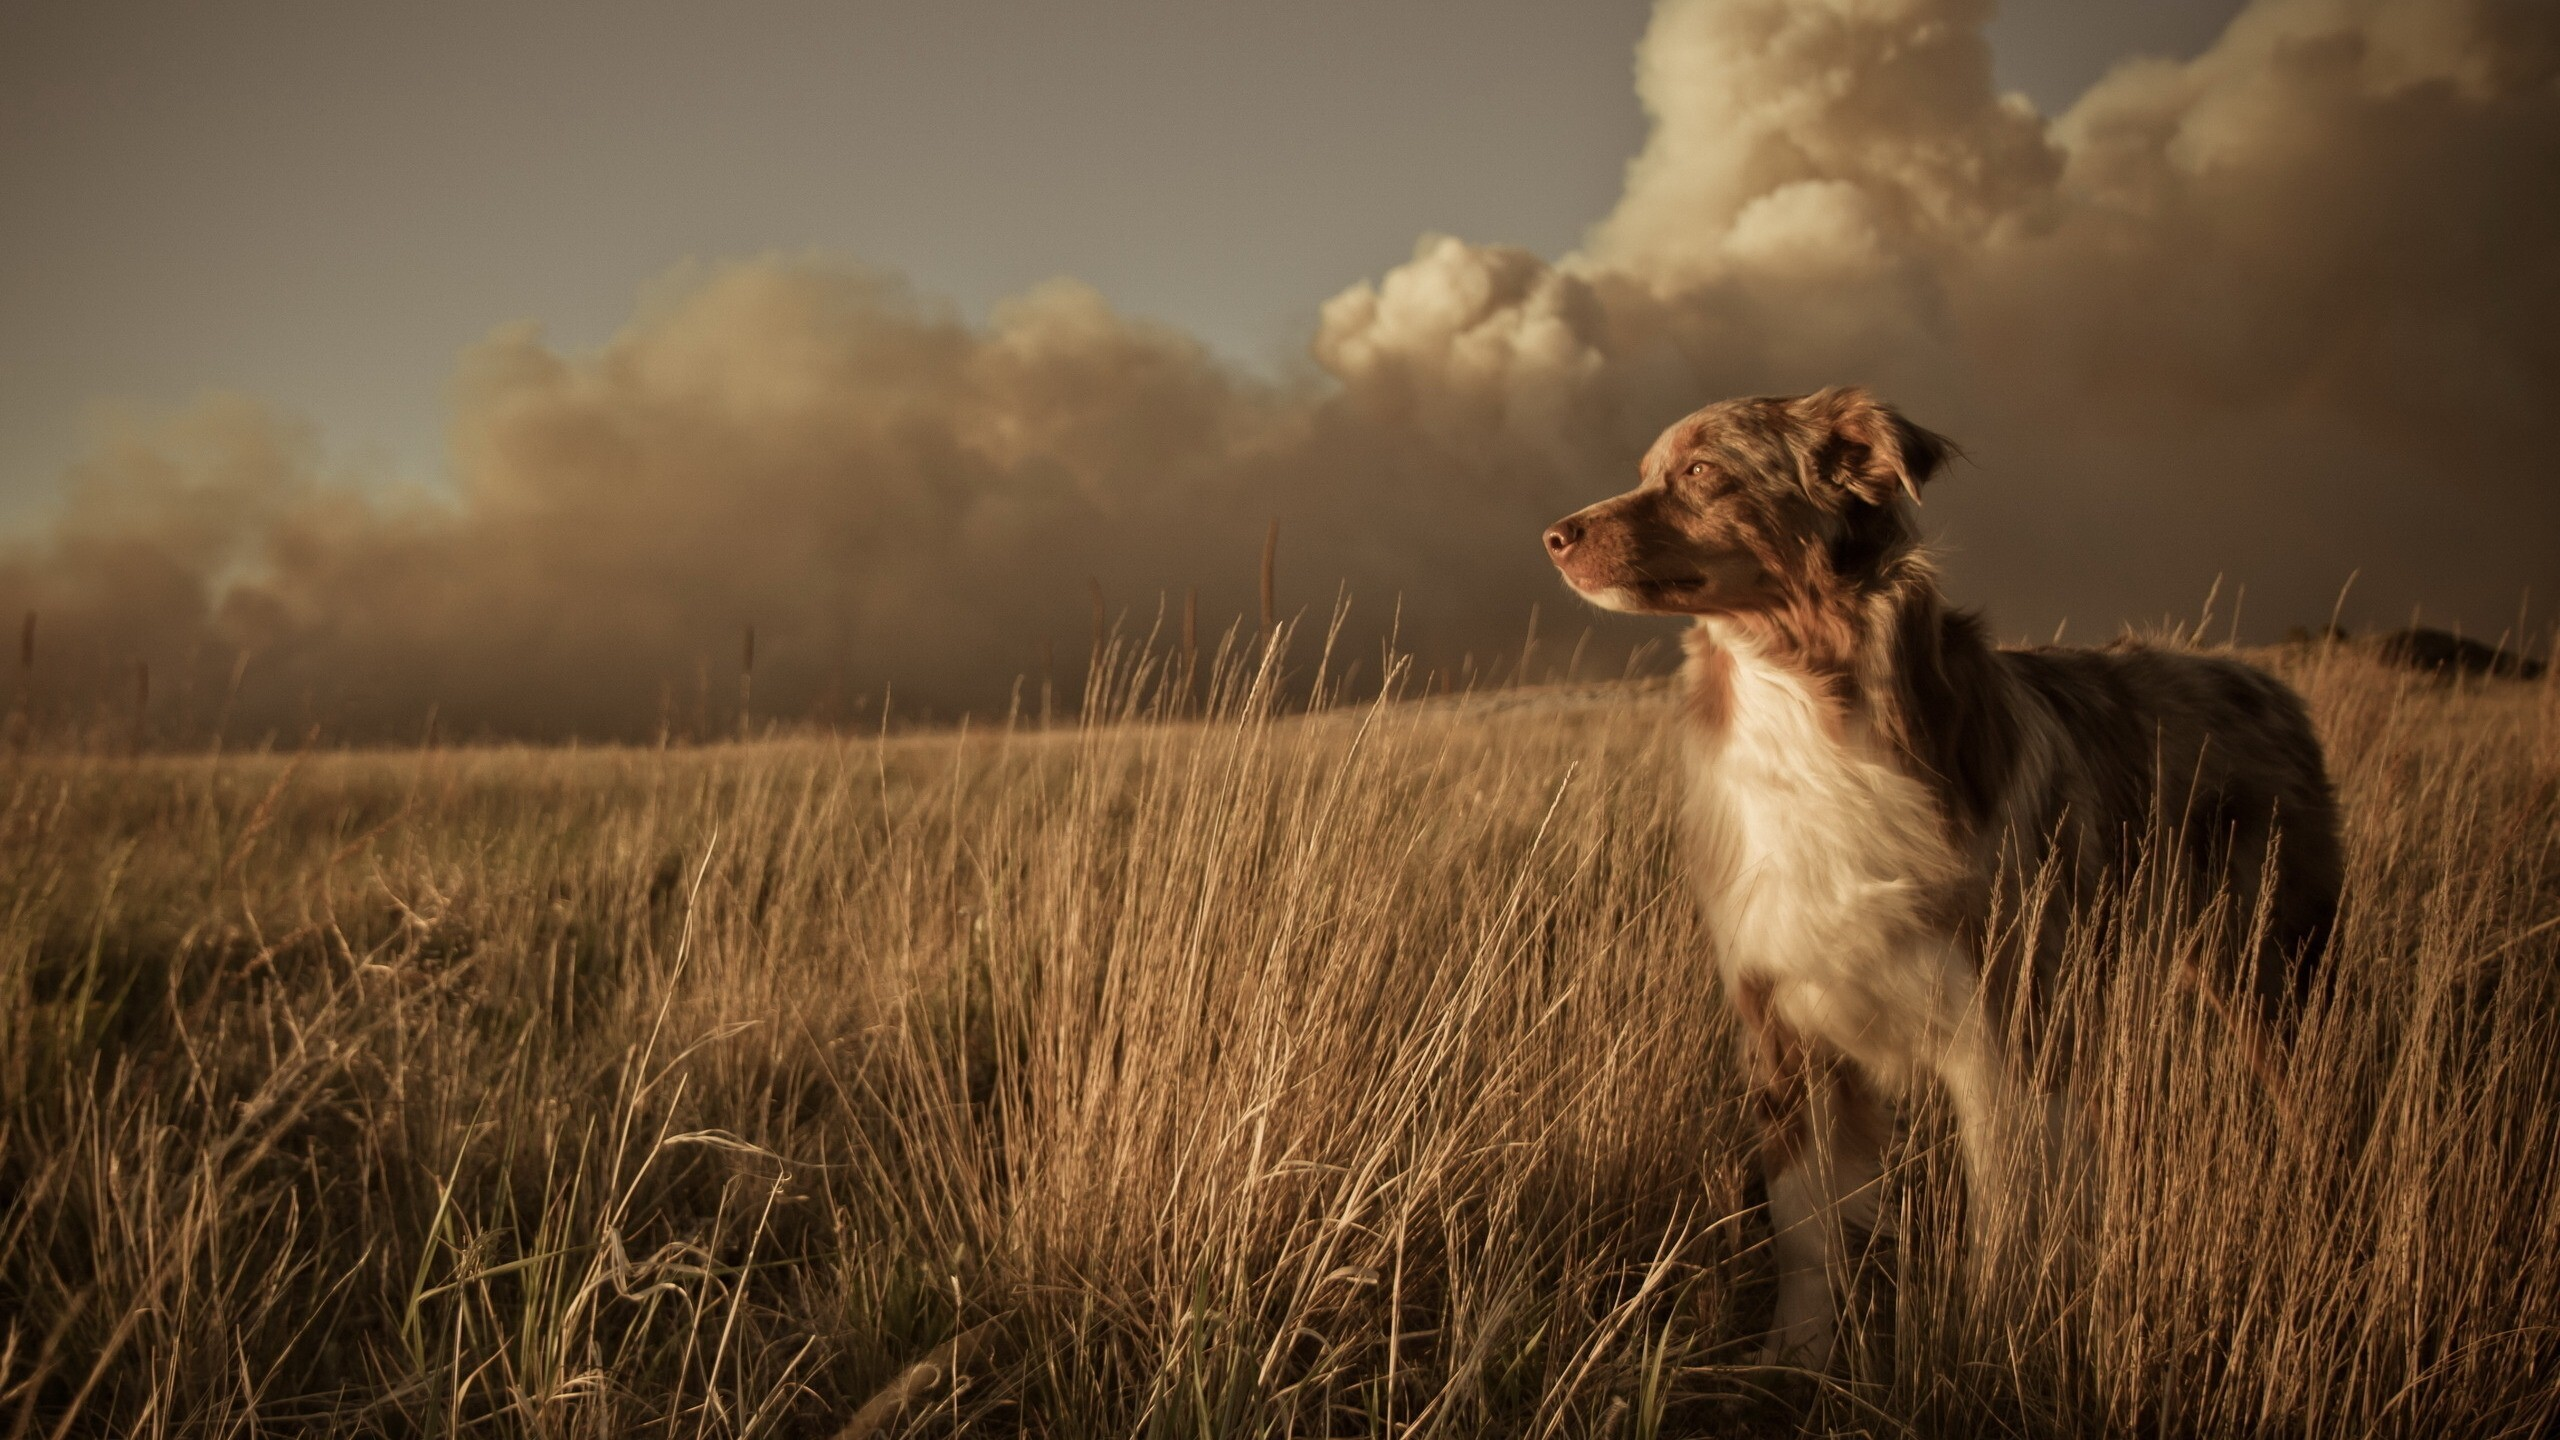 Download Wallpapers Download 2790x2547 Animals Grass: Animal Dog In Dry Grass